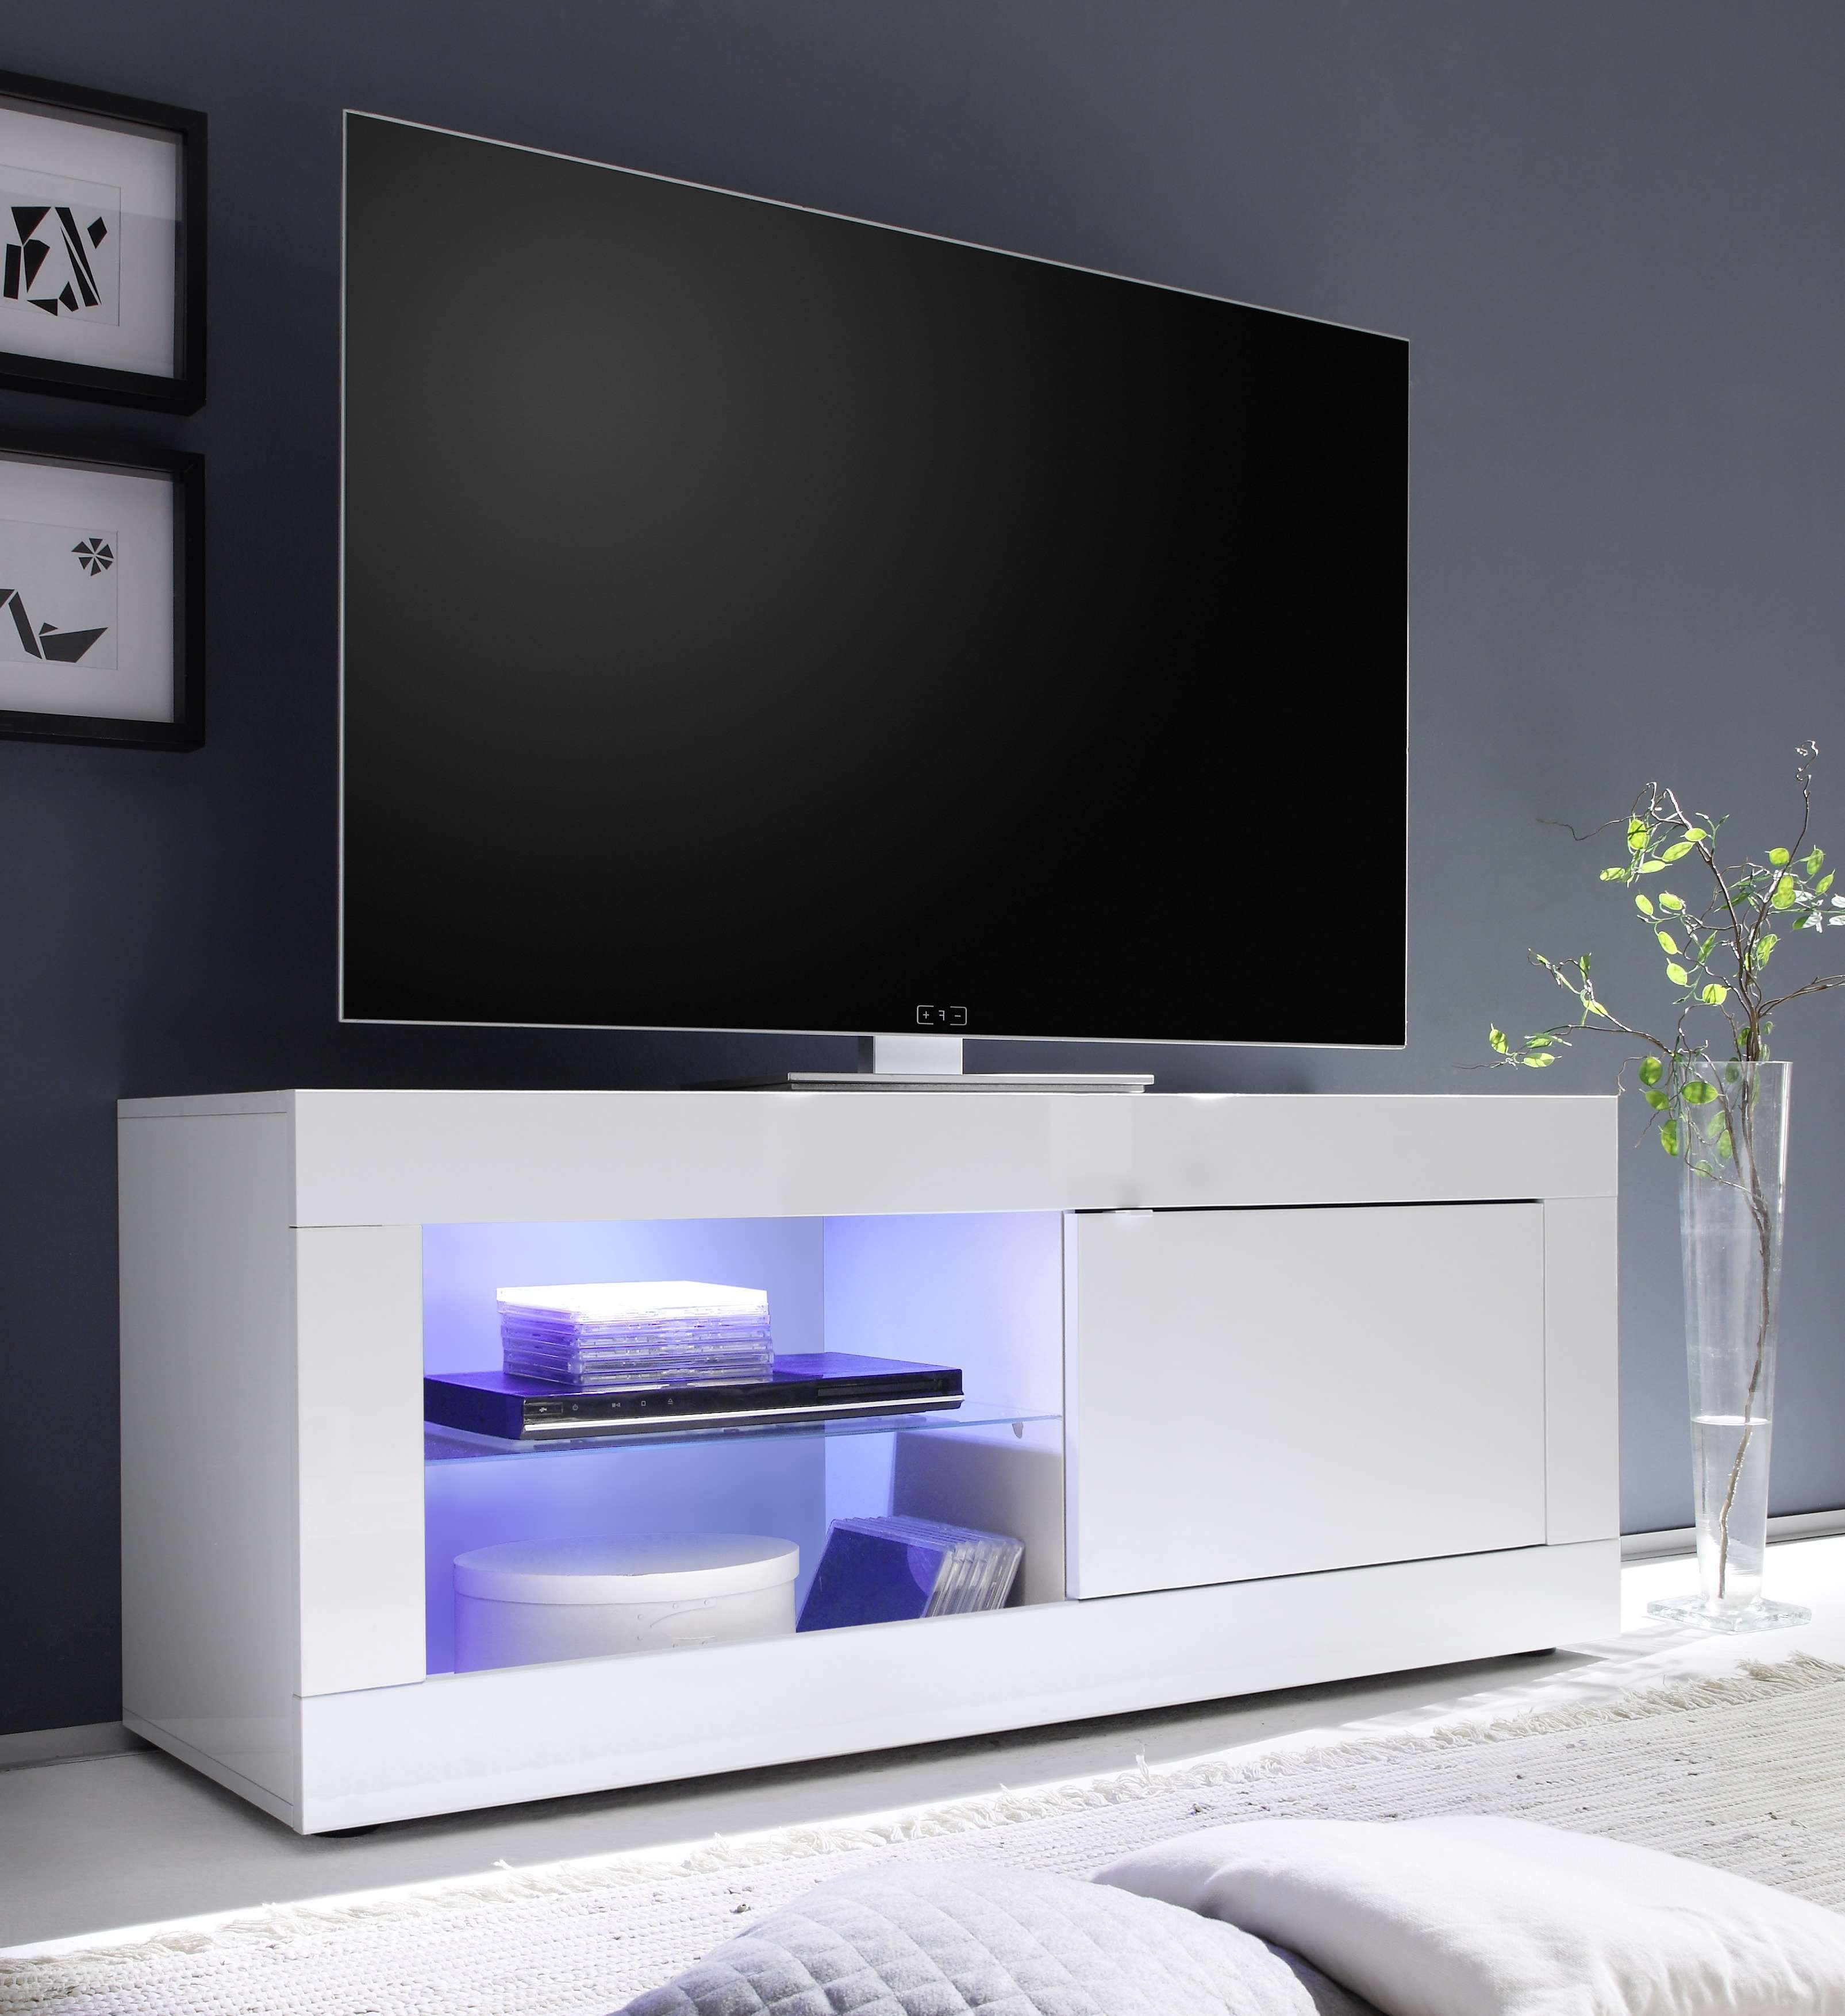 Basic Small Tv Stand, All White Buy Online At Best Price – Sohomod Intended For White Tv Stands (View 12 of 15)